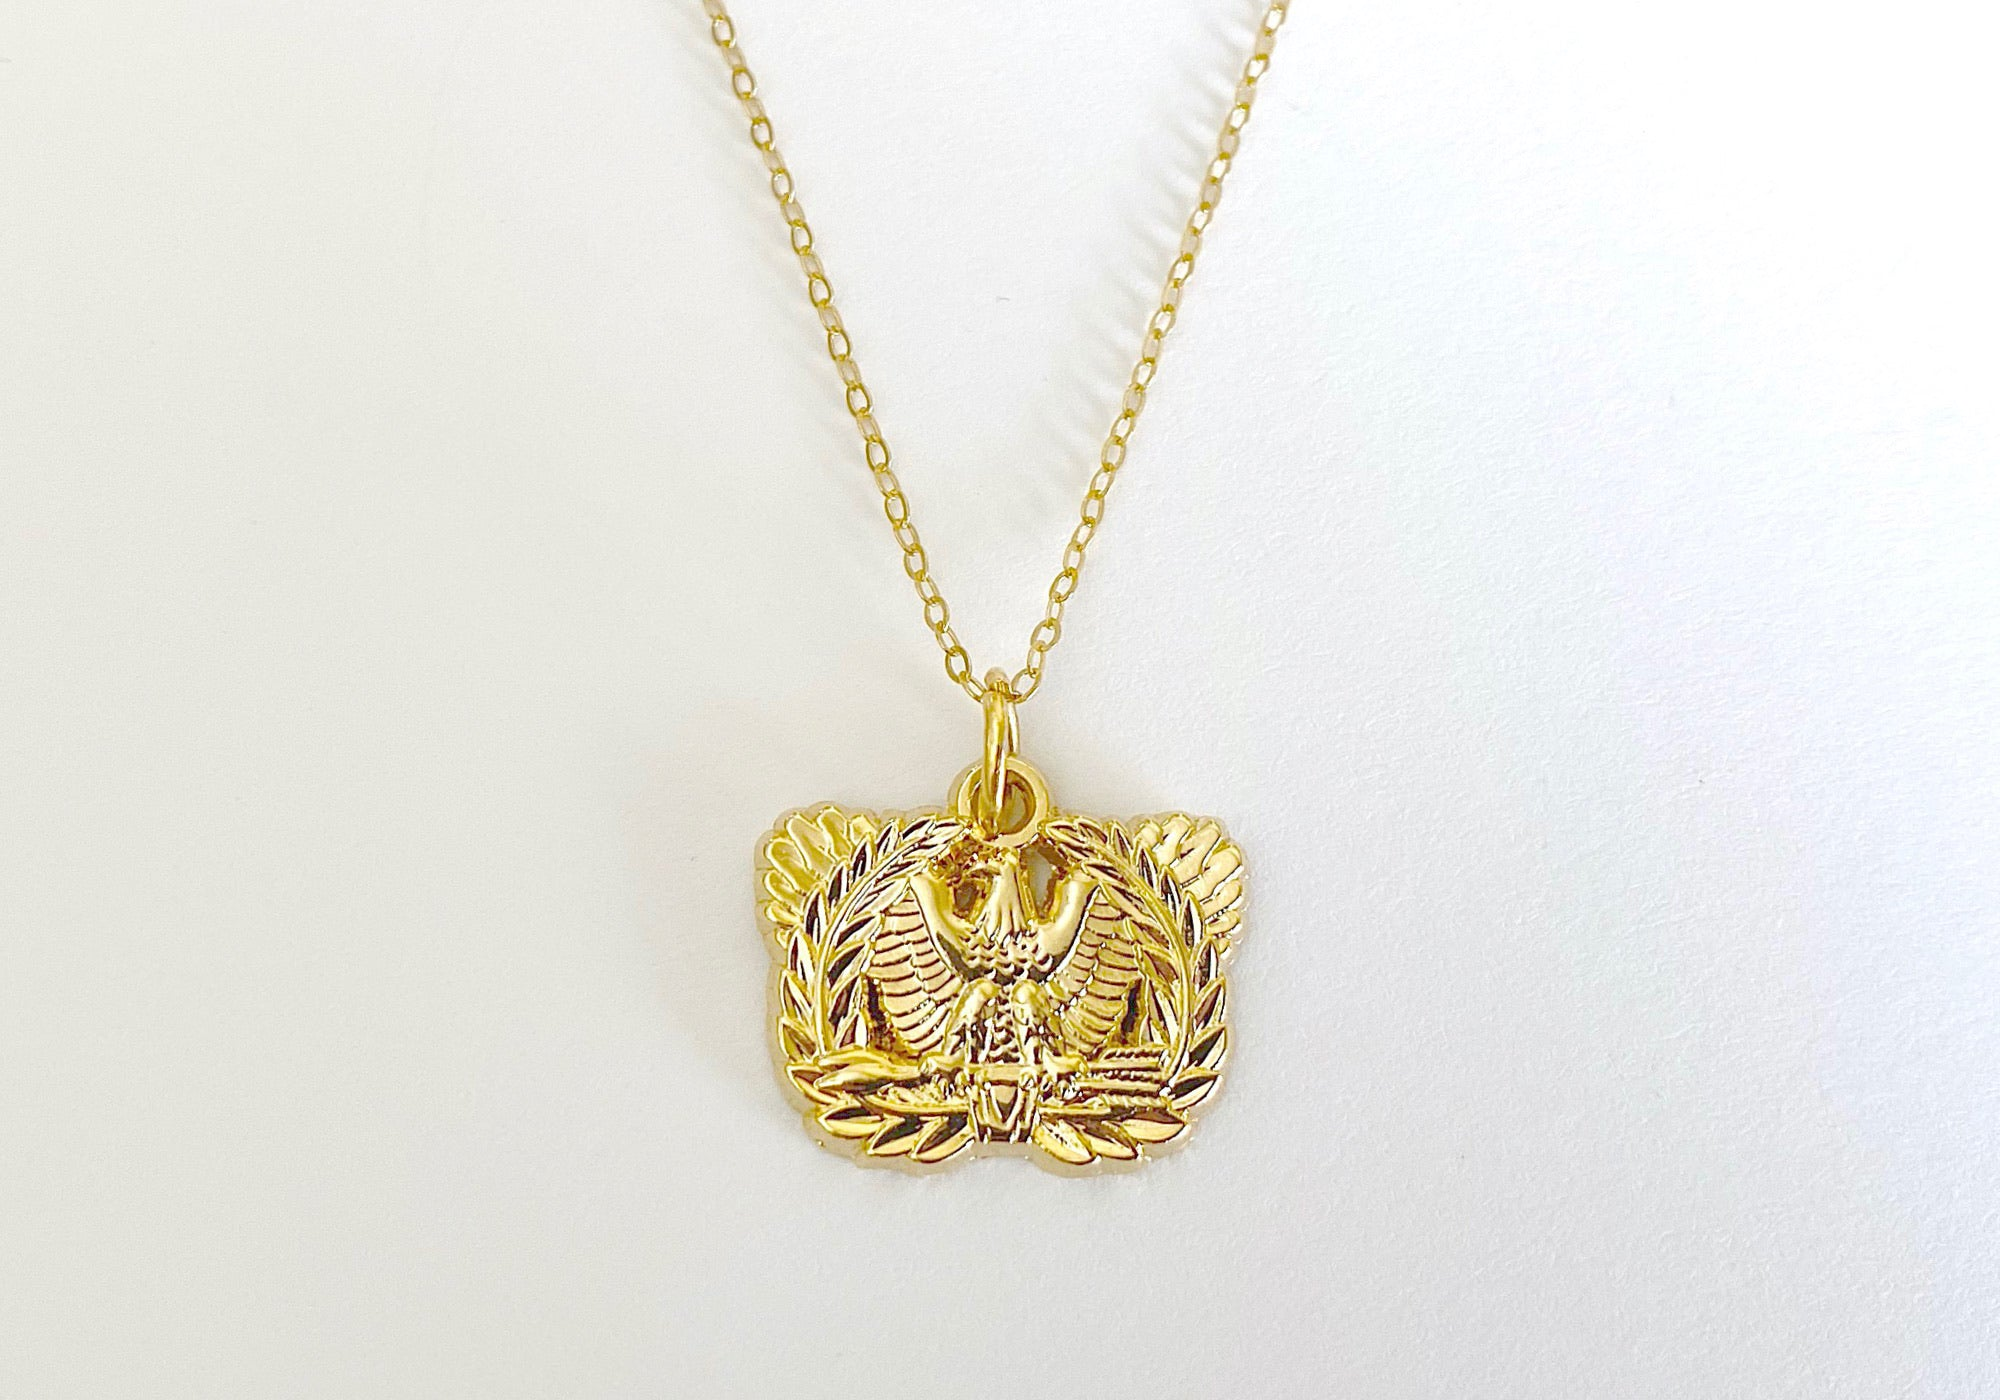 Warrant Officer Charm Necklace